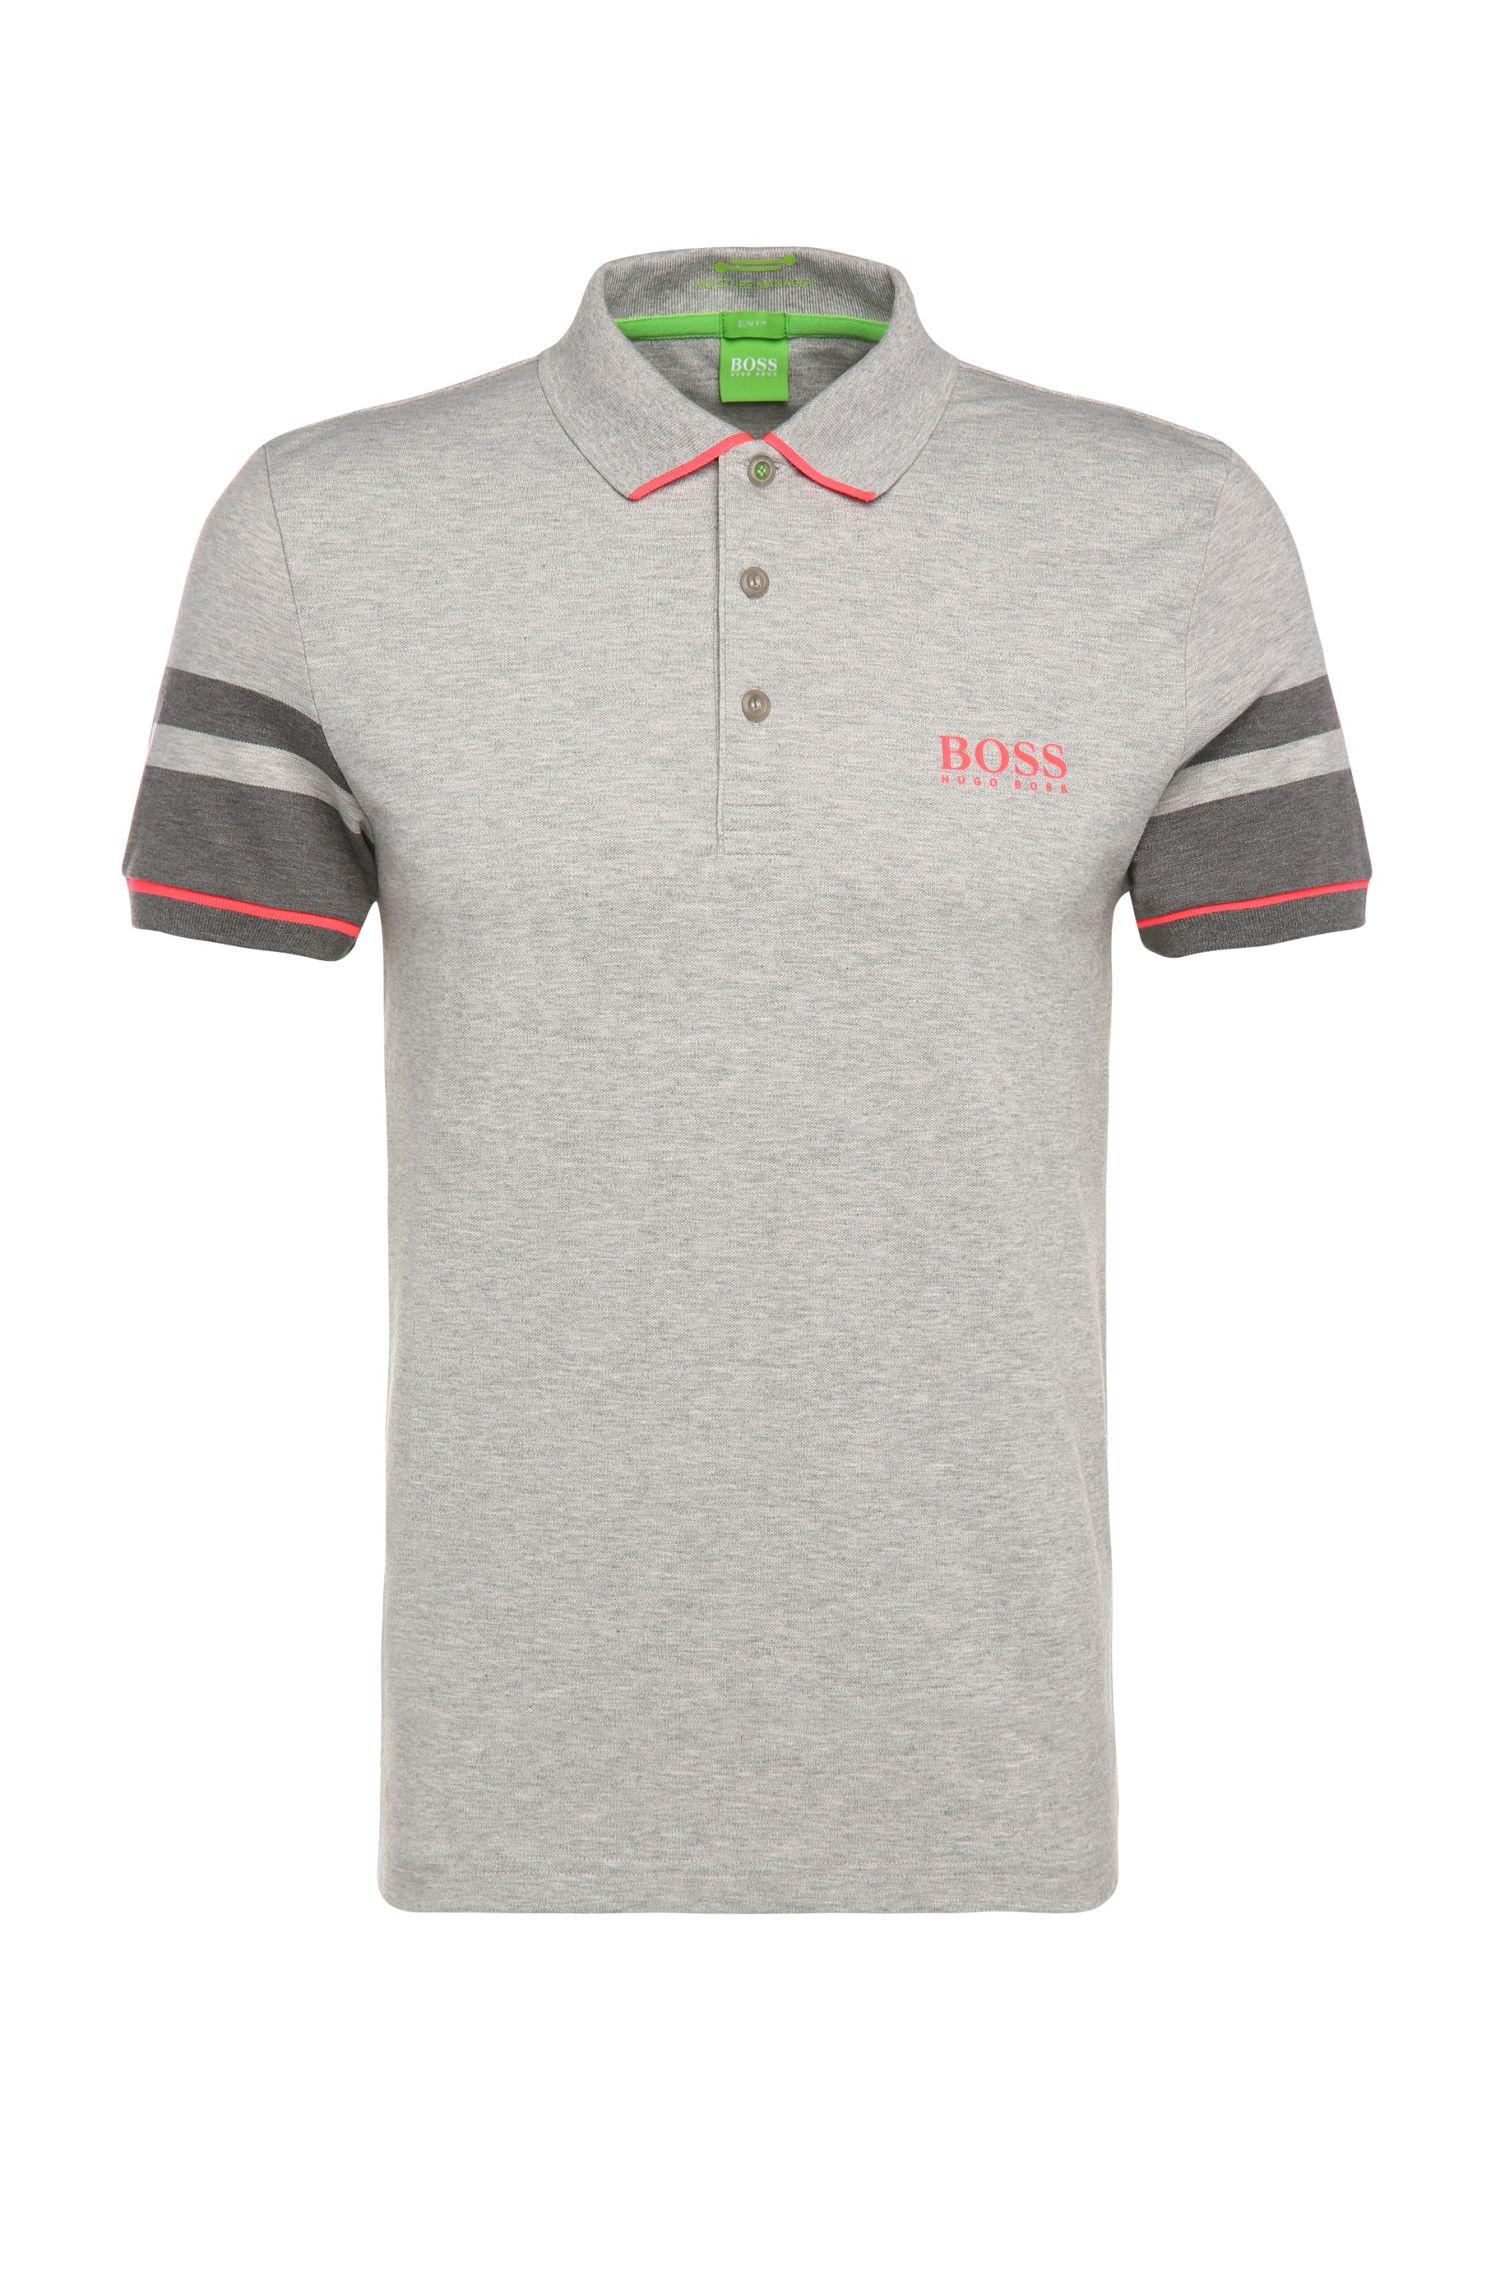 'Paule Pro' | Slim Fit, Moisture Manager Cotton Polo Shirt